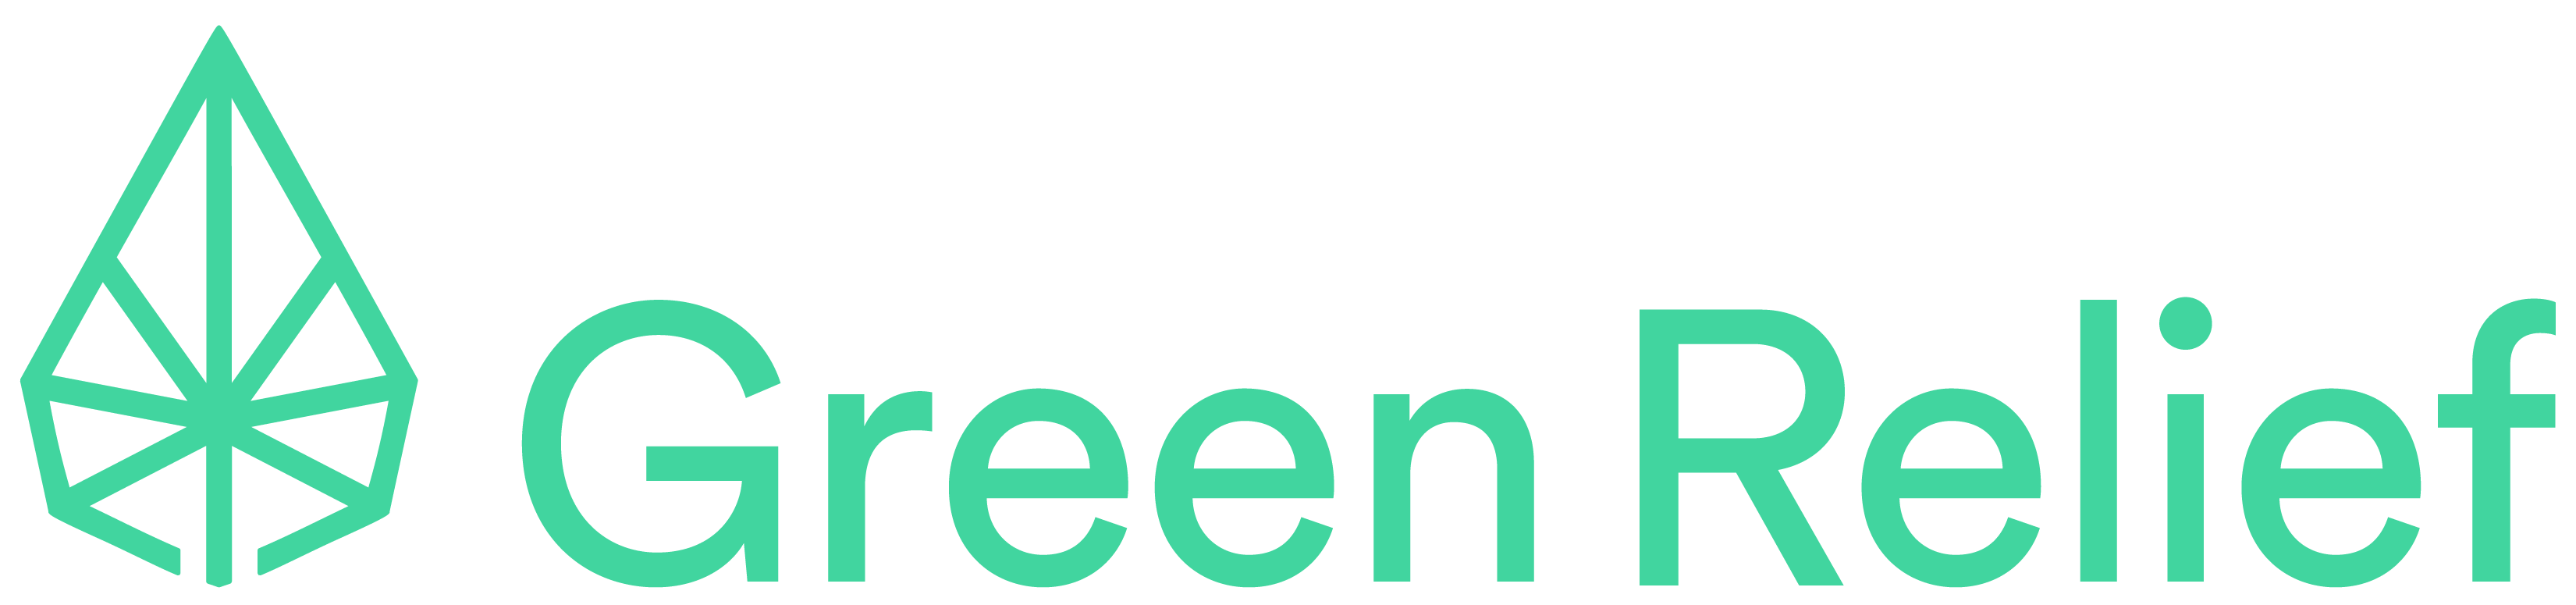 GreenRelief Logo RGB Horizontal Light Bongs VS Pipes: Which Is The Best Option For New Smokers?